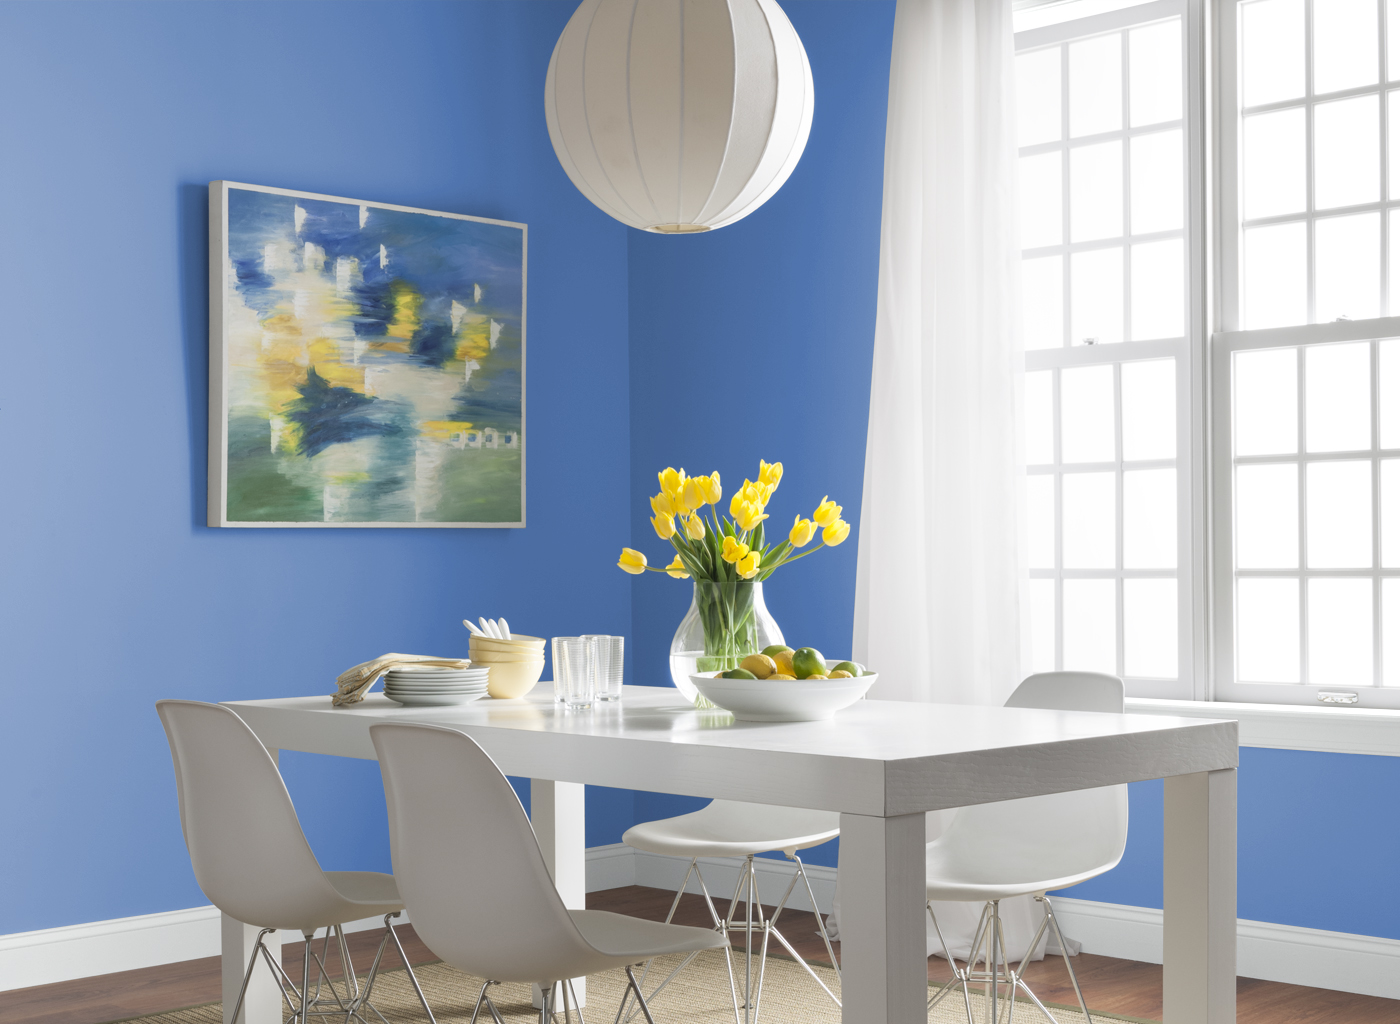 Stunning Design Of The Blue Dining Room With Blue Wall Ideas Added With White Wooden Windows And White Wooden Dining Set Ideas